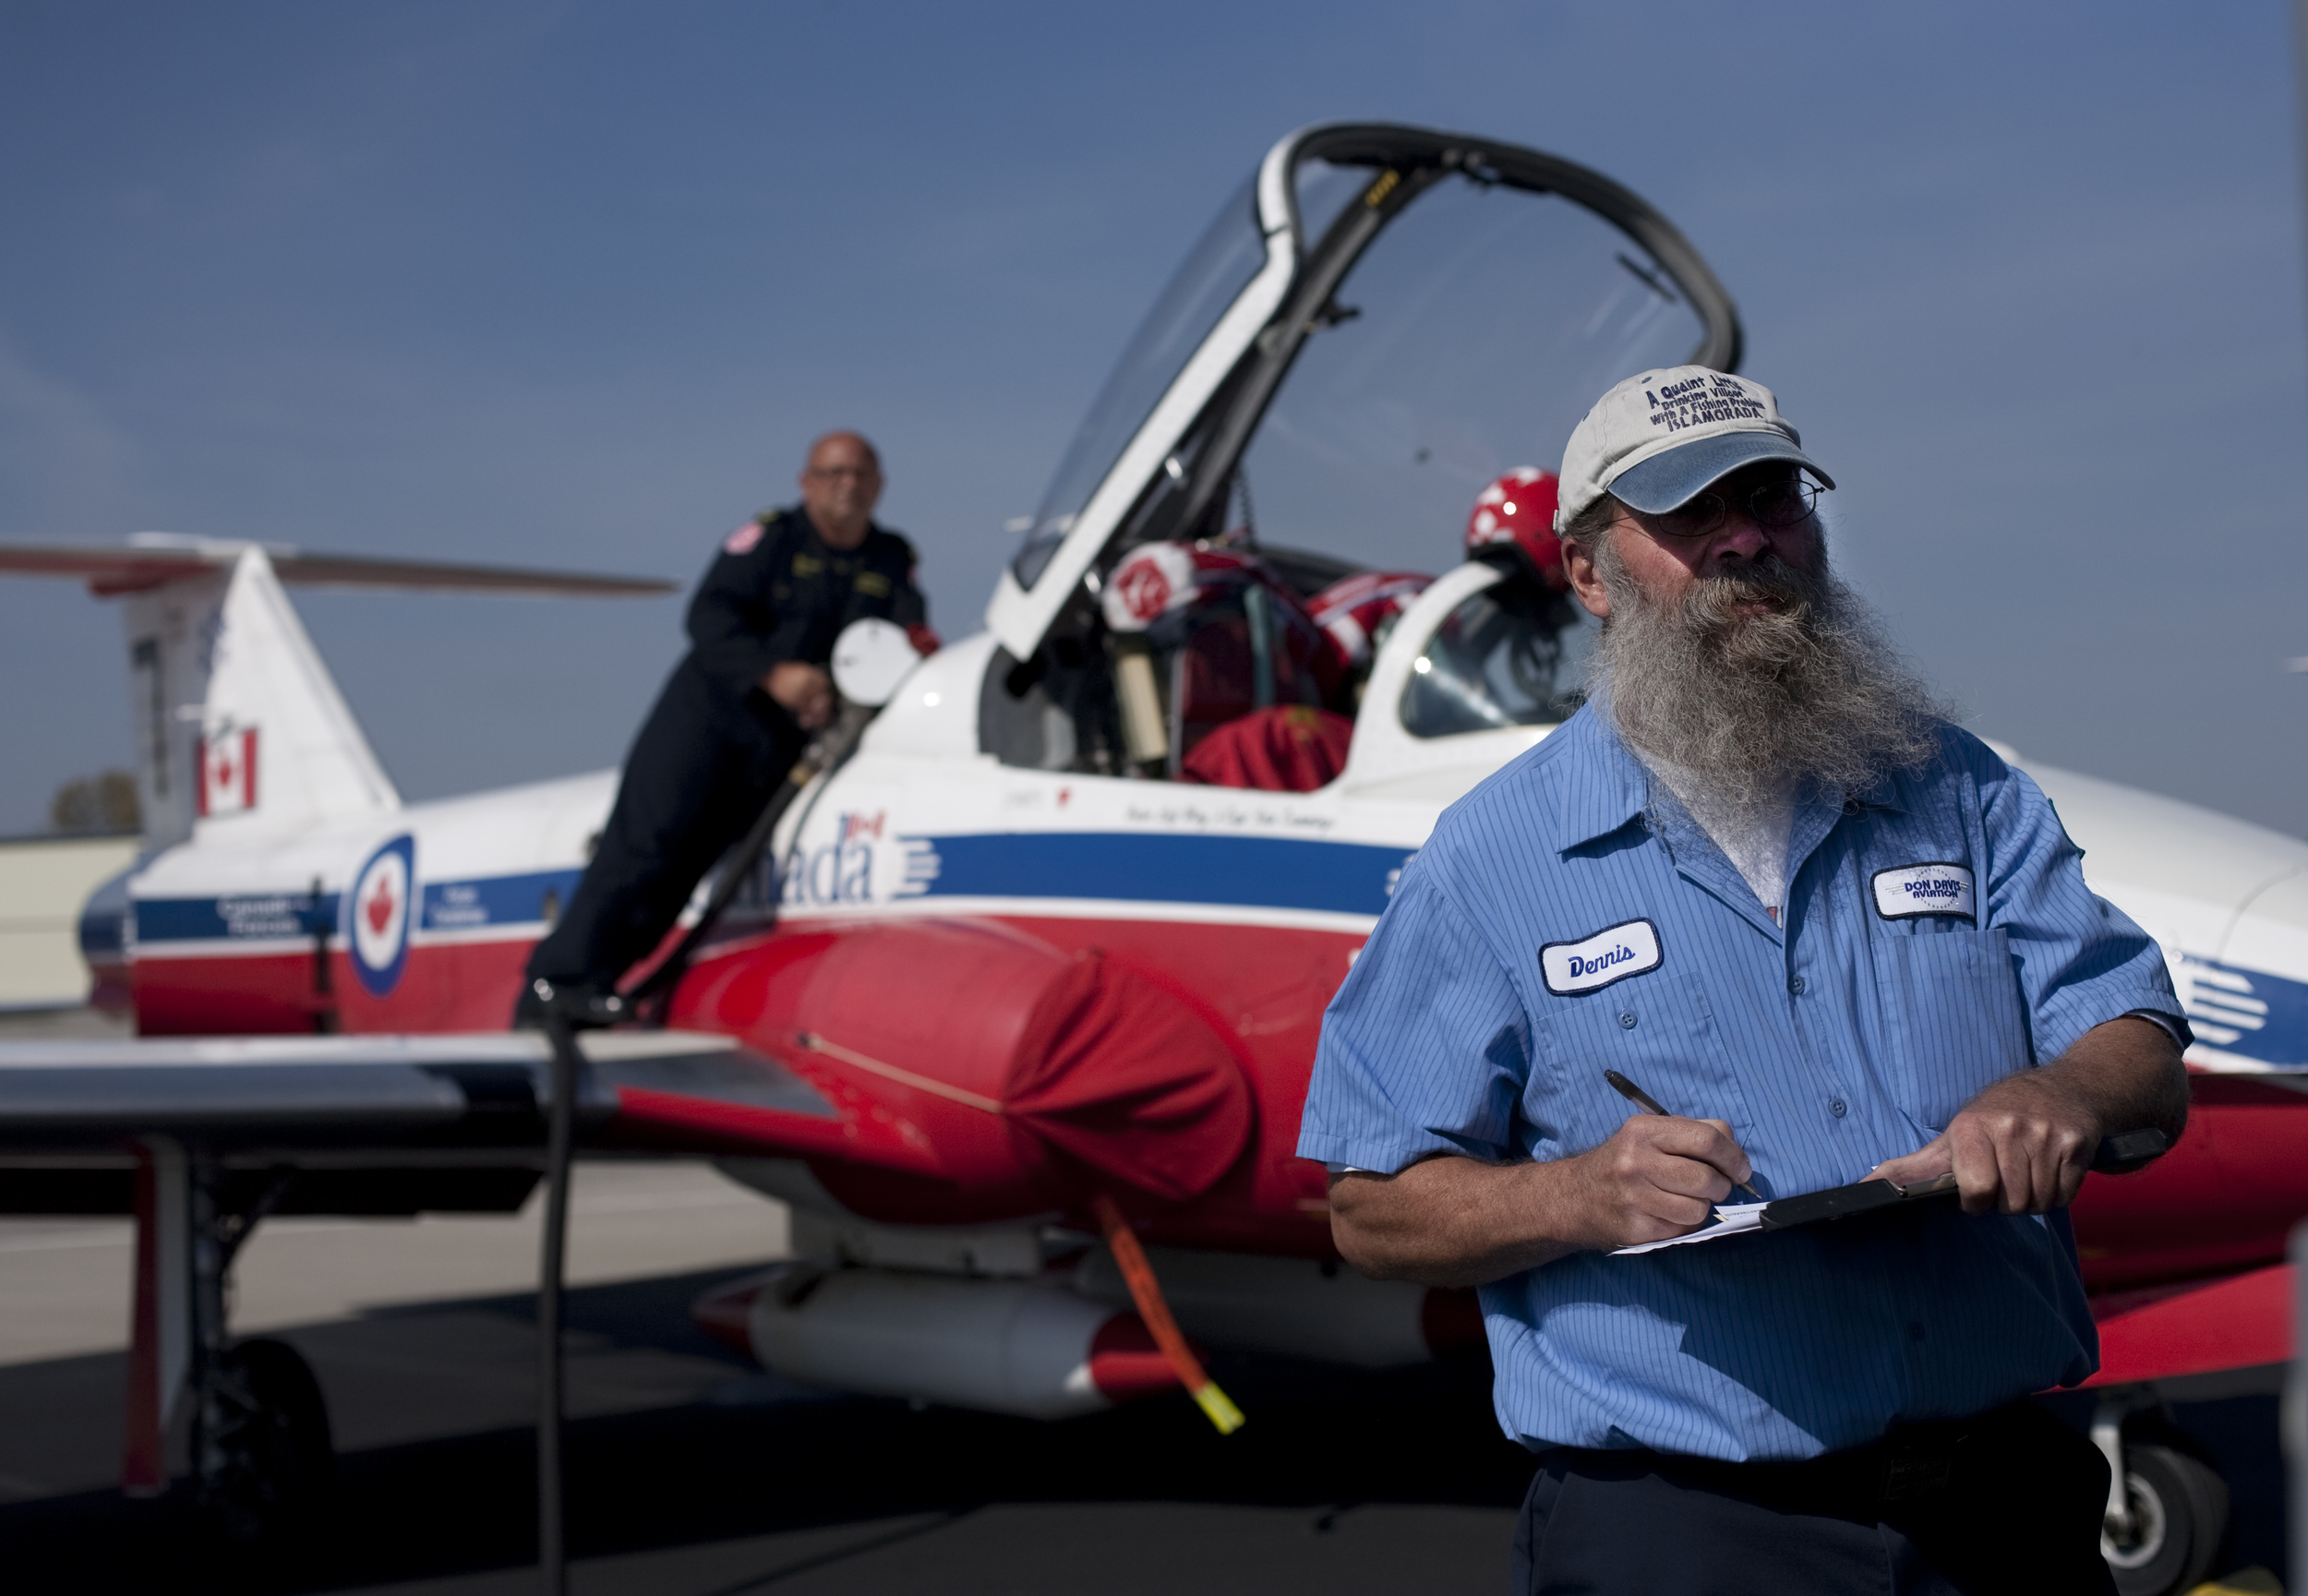 Dennis Montgomery, of Evansville, Ind., monitors fuel gauges as he refuels a member of the Canadian Snow Birds' aircraft. Montgomery has been working at the Henderson Kentucky Regional Airport for four months. The summer drought cut into his lawn care business profits and he had to reenter the job market.